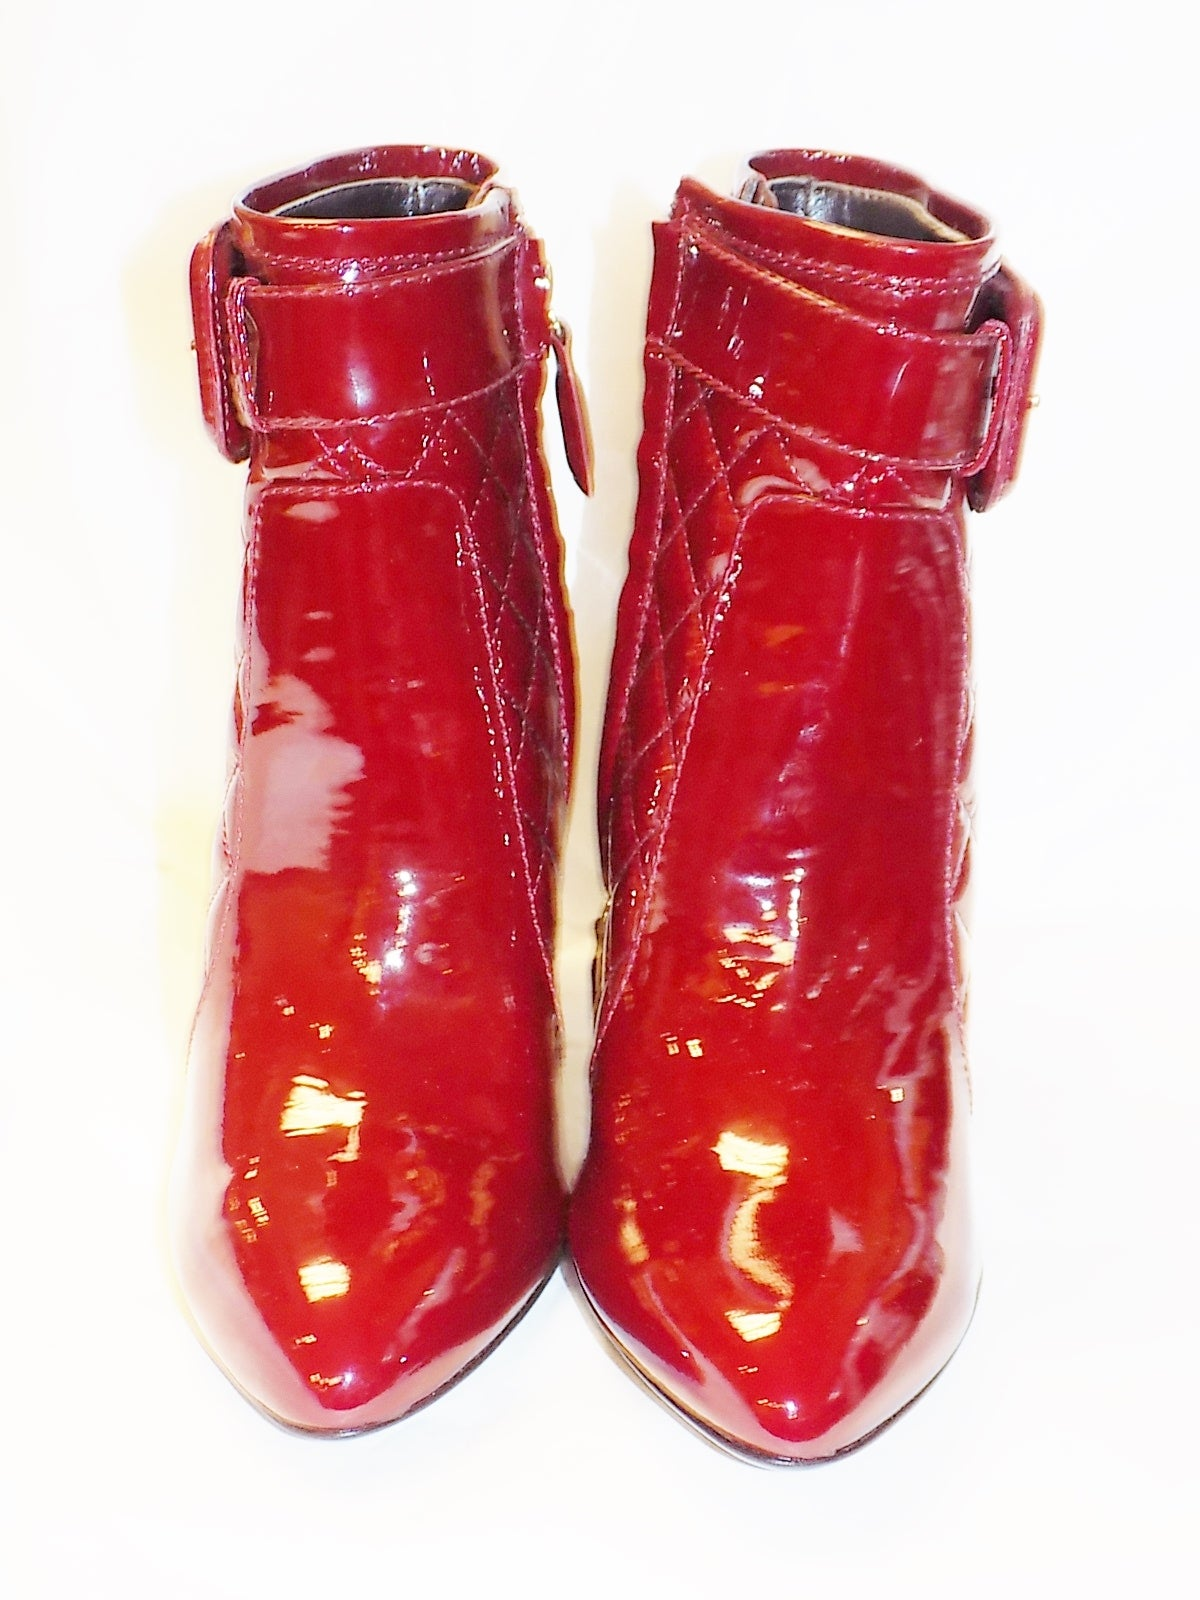 New  Burberry Burgundy Red  Patent leather Ankle boots 3